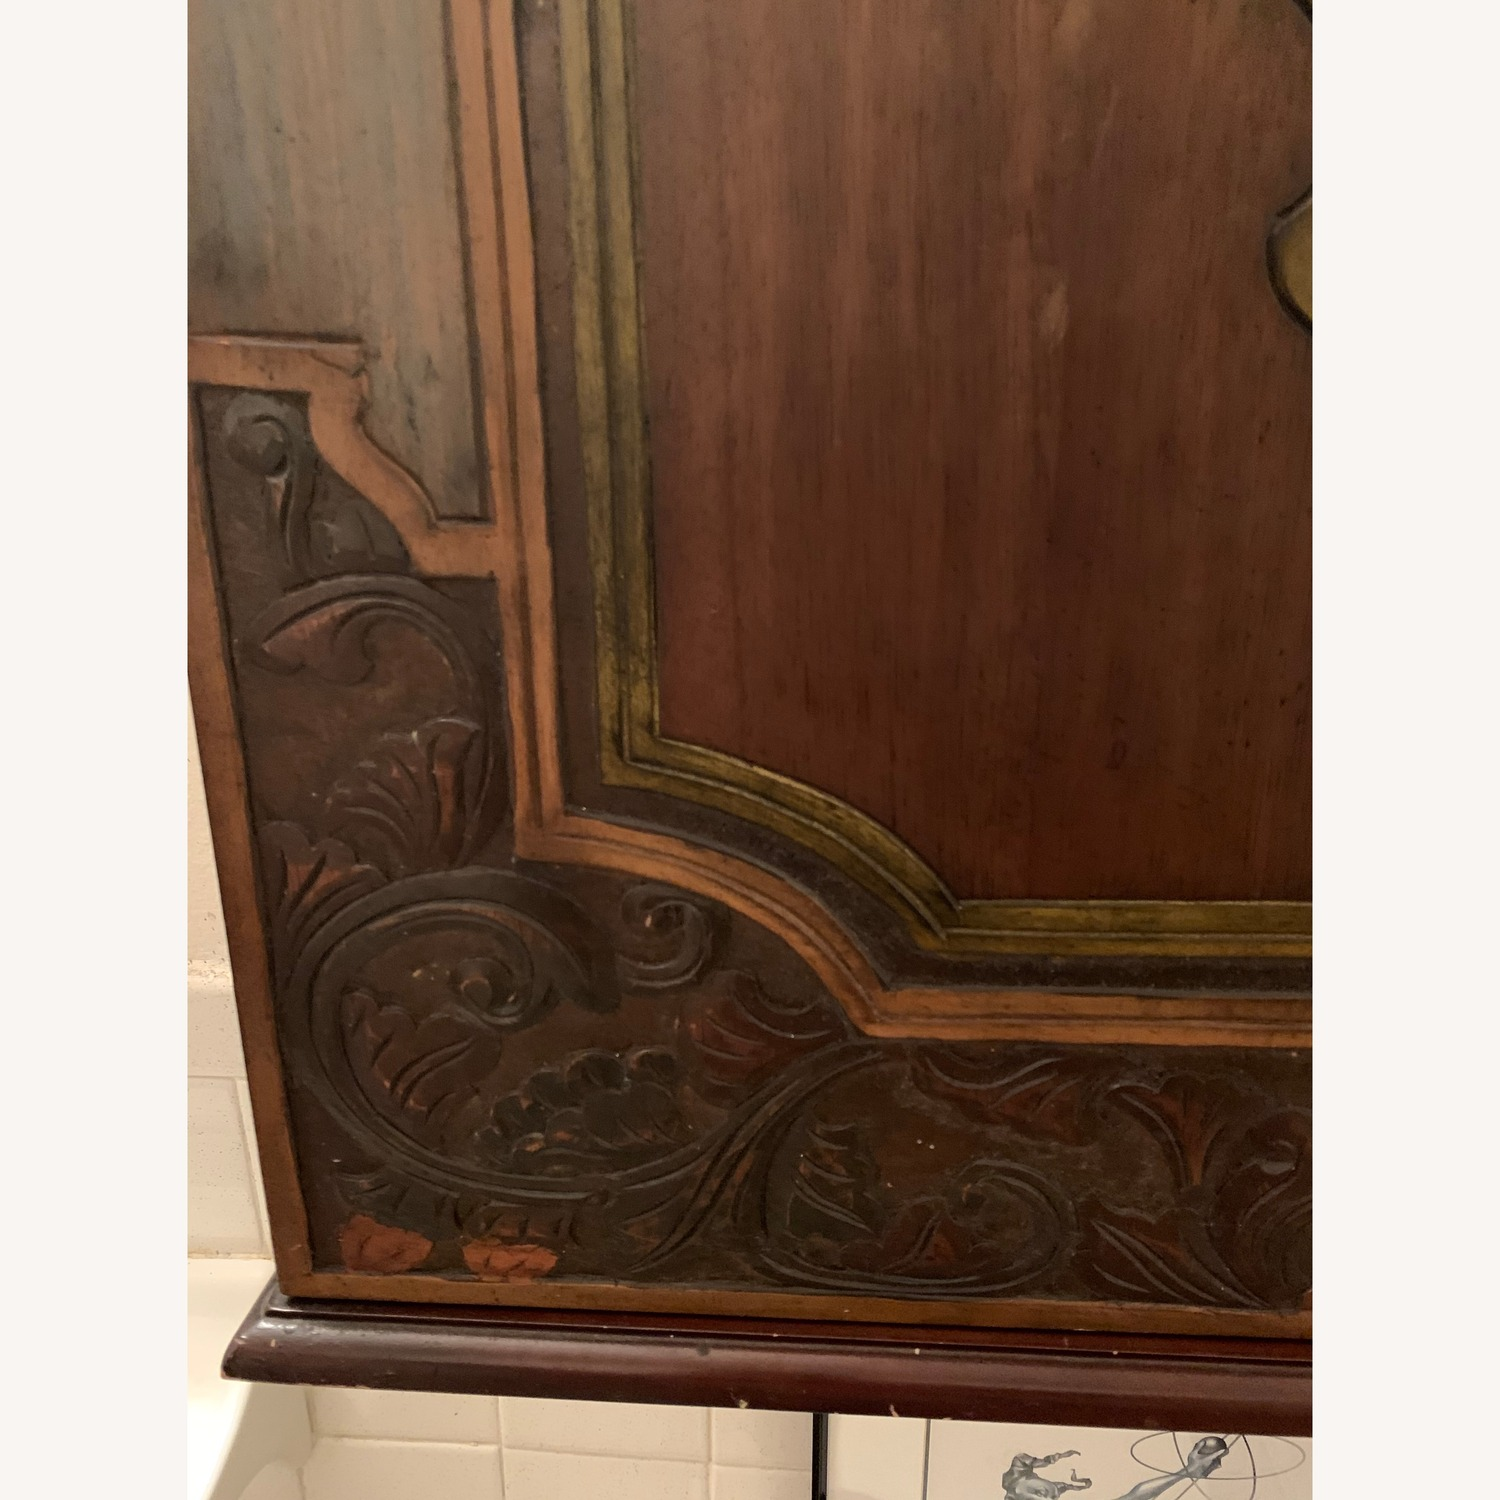 Asian Inspired Cabinet - image-27